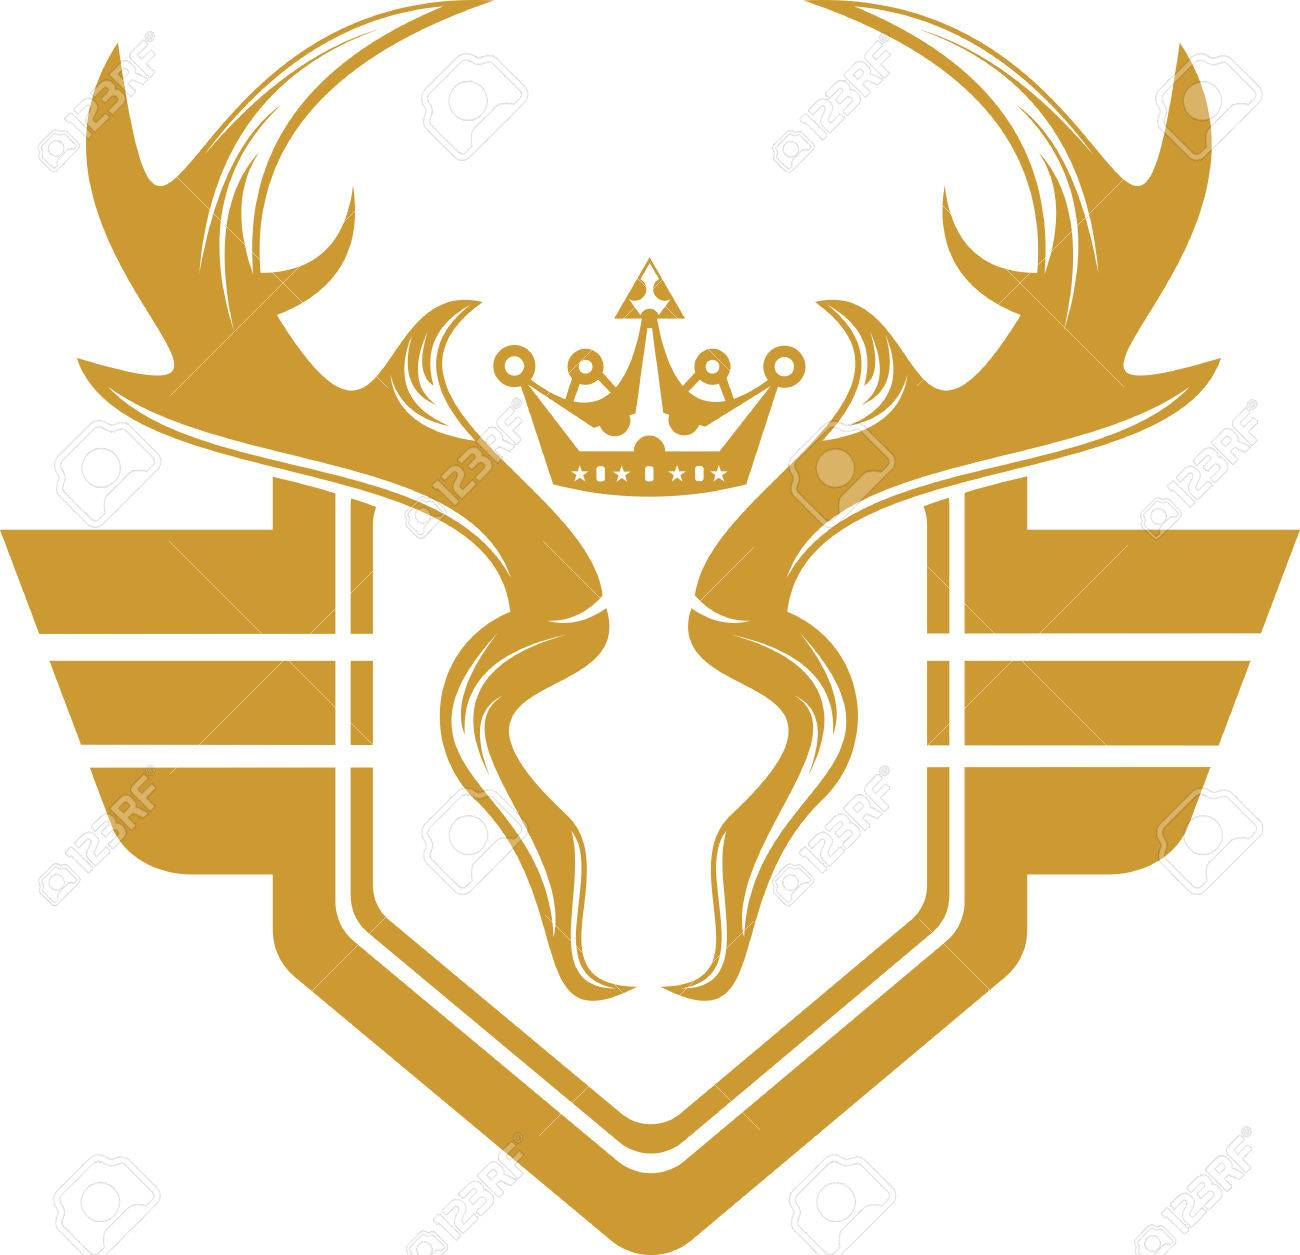 deer crest emblem logo royalty free cliparts vectors and stock